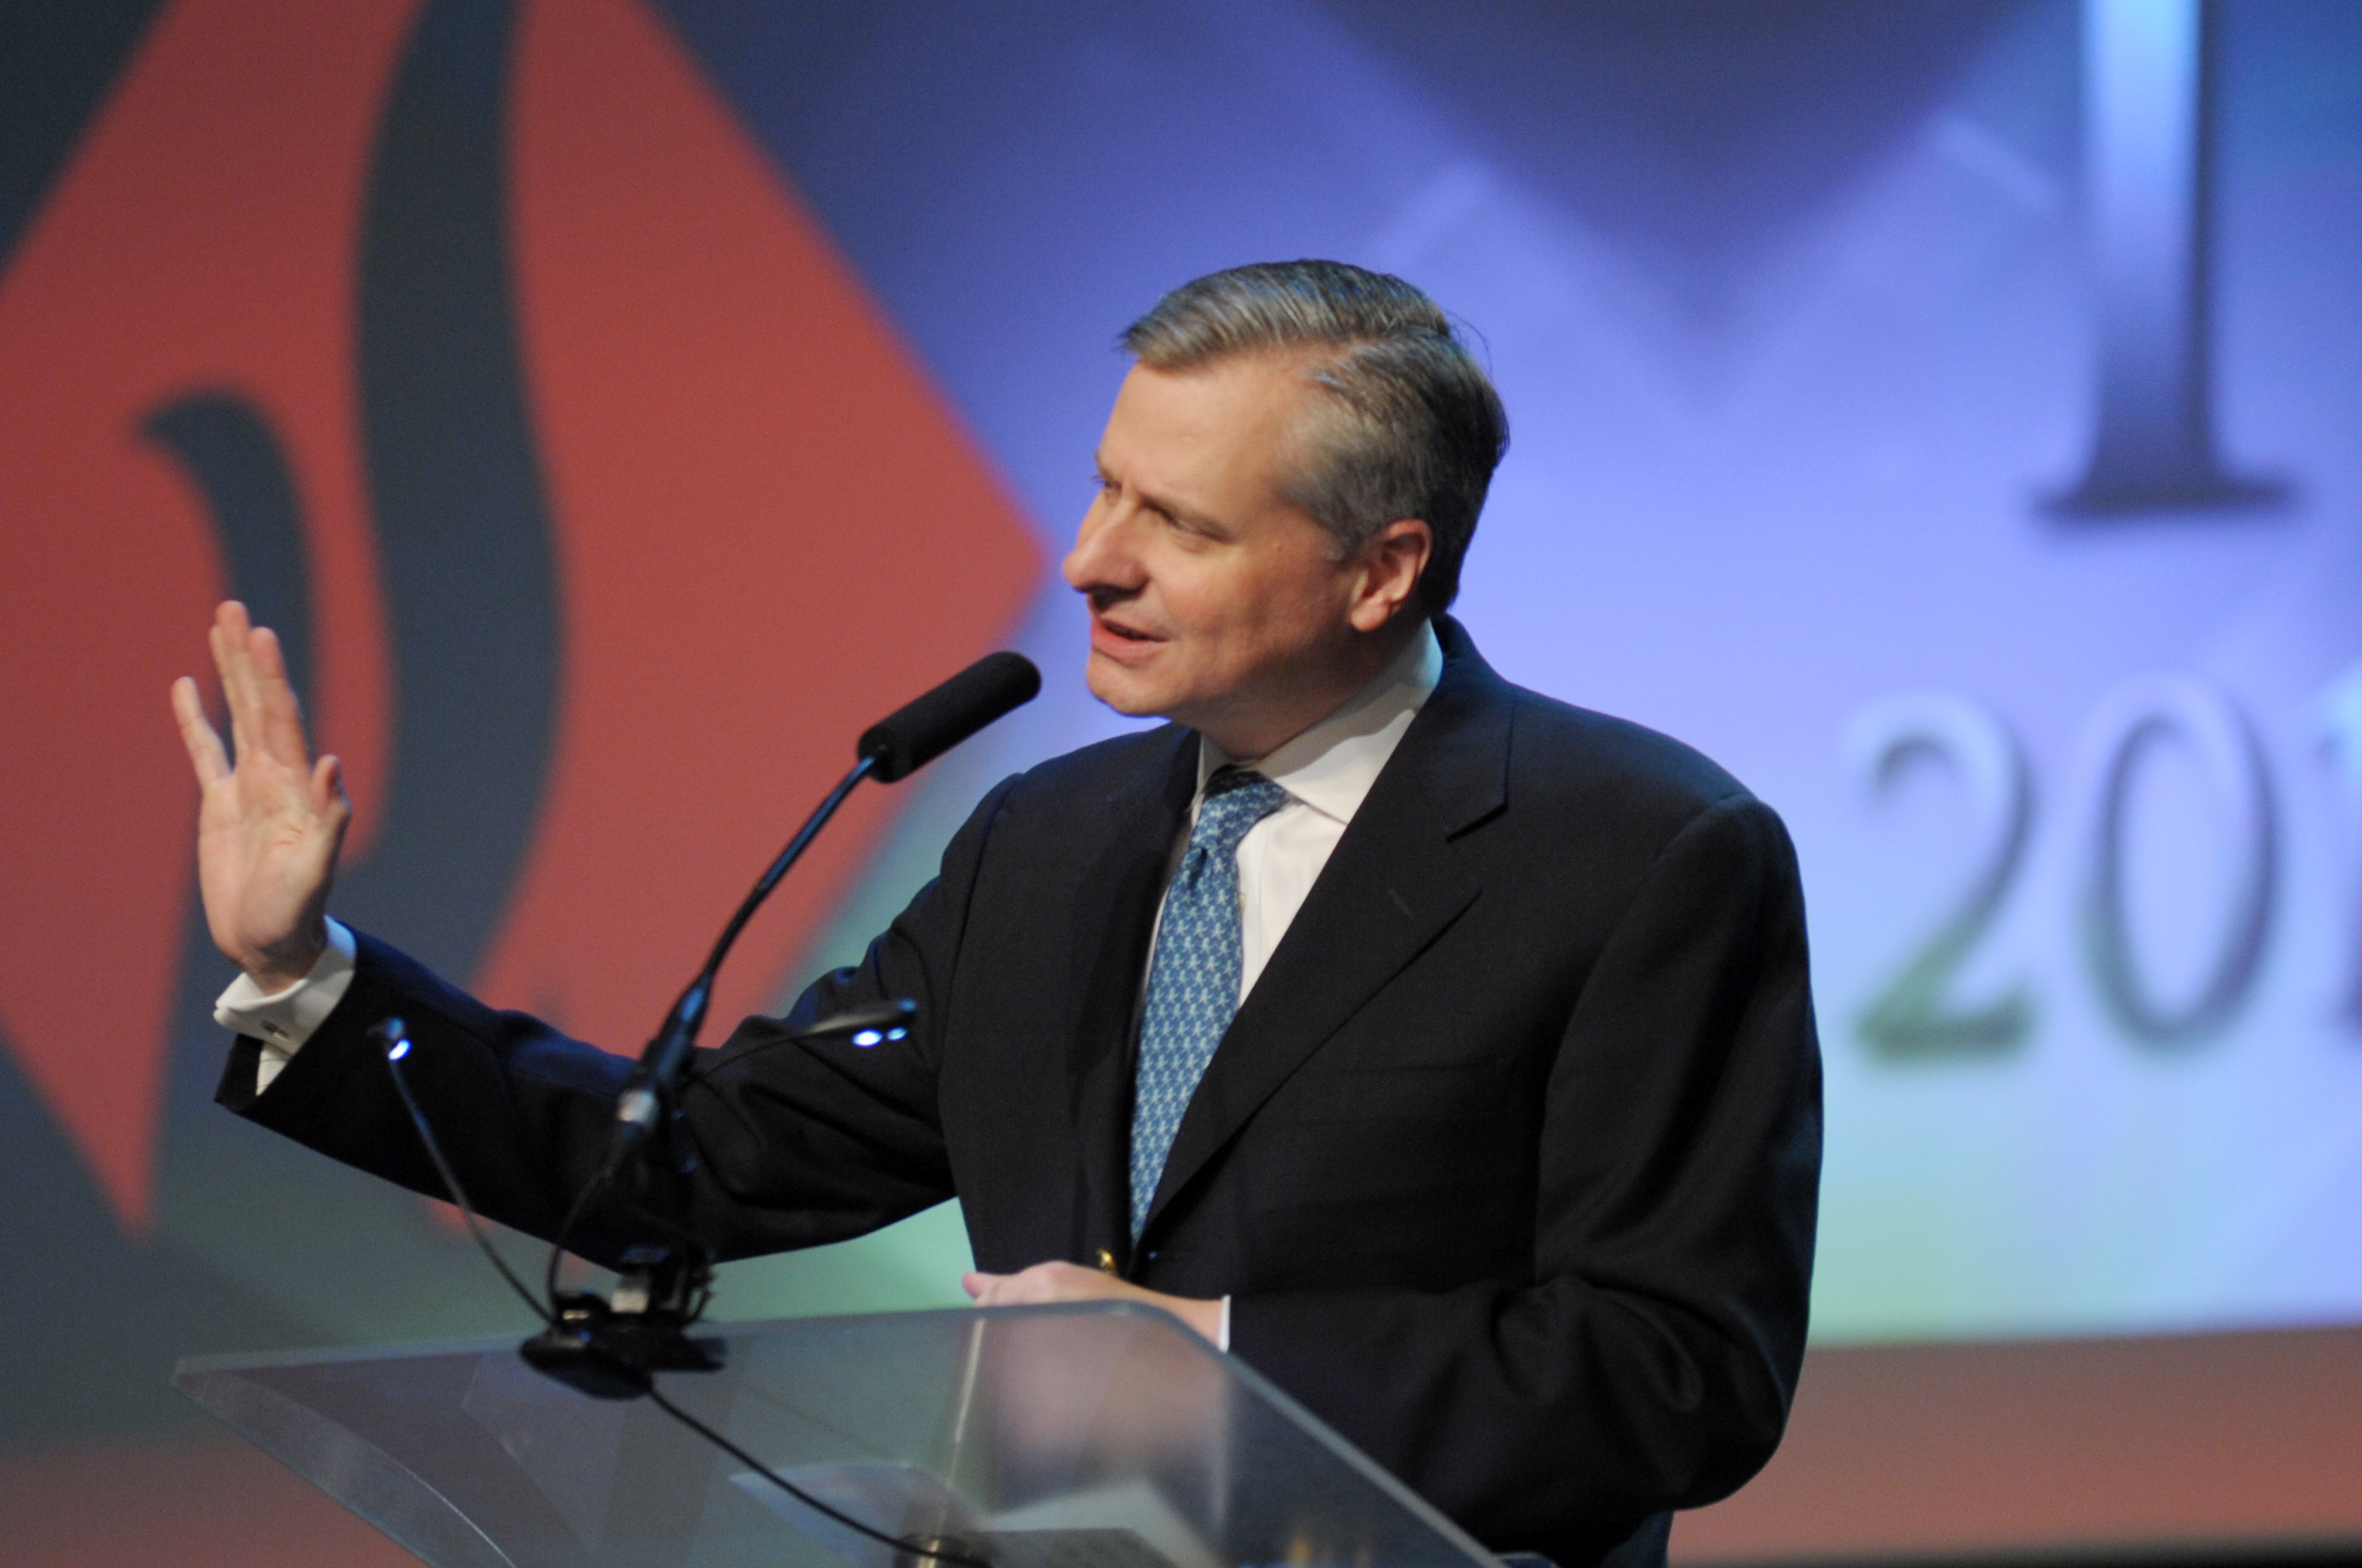 Pulitzer Prize winner Jon Meacham to deliver 23rd annual Governor's Lecture